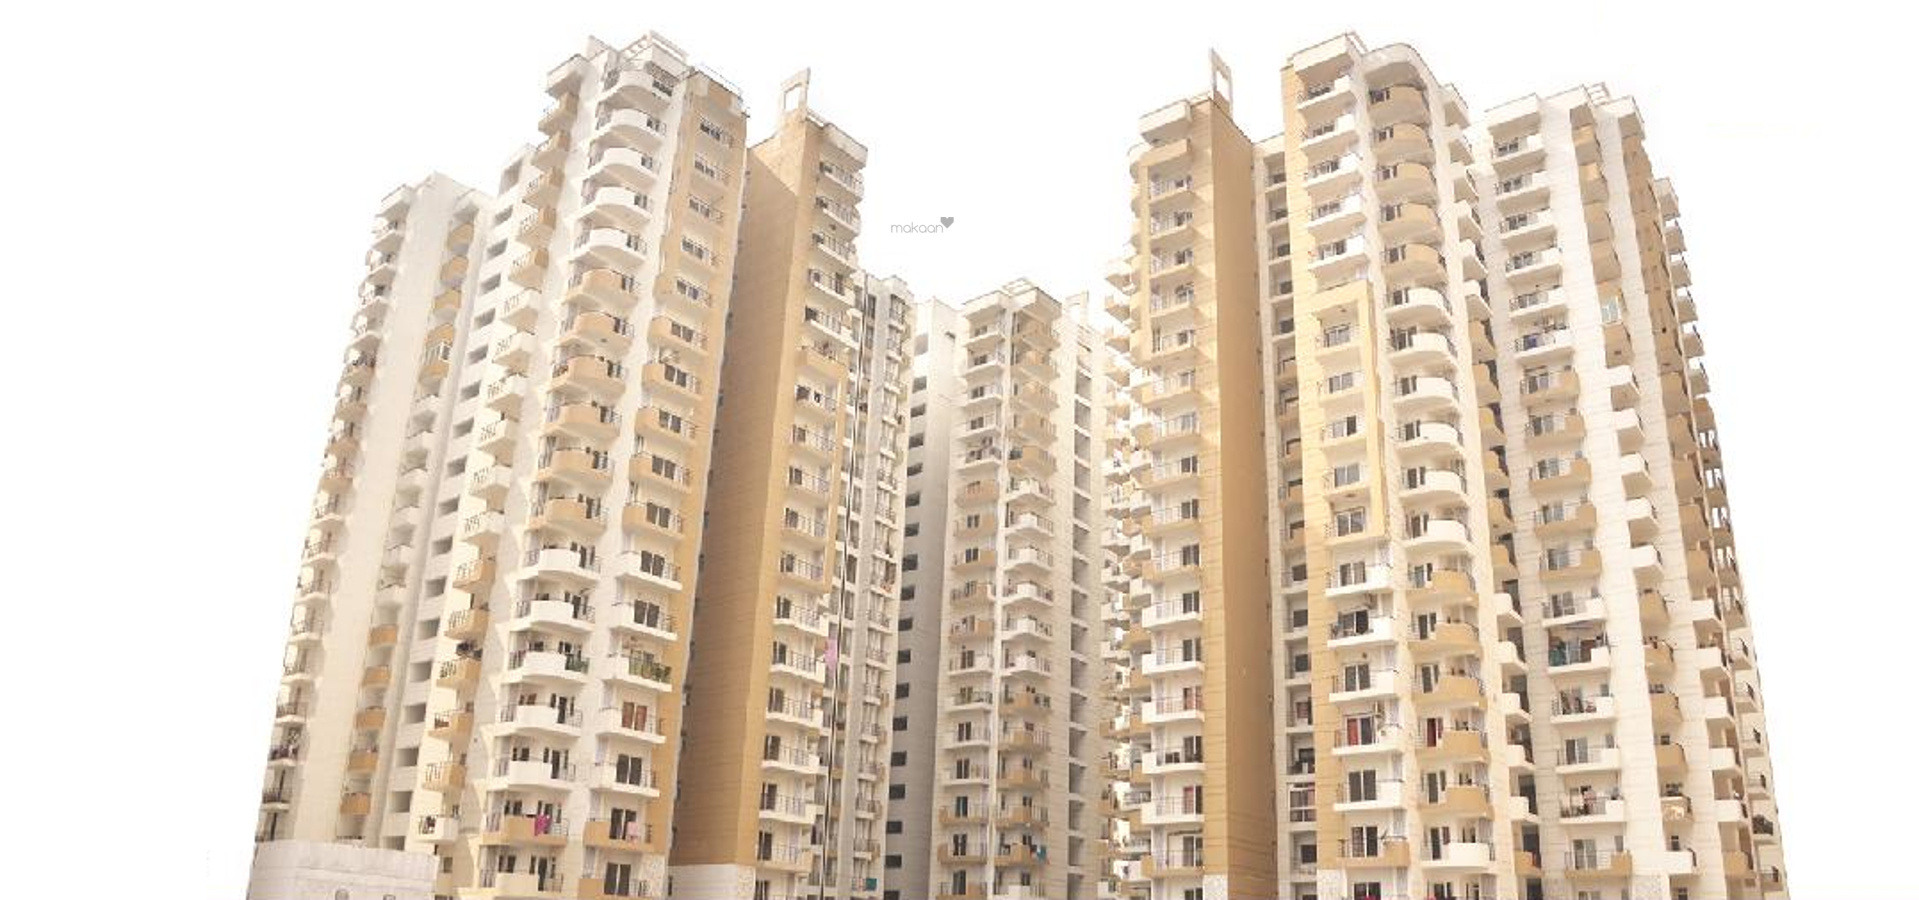 1765 sq ft 3BHK 3BHK+4T (1,765 sq ft)   Study Room Property By Ajmani Estates In Zenith, Sector 77